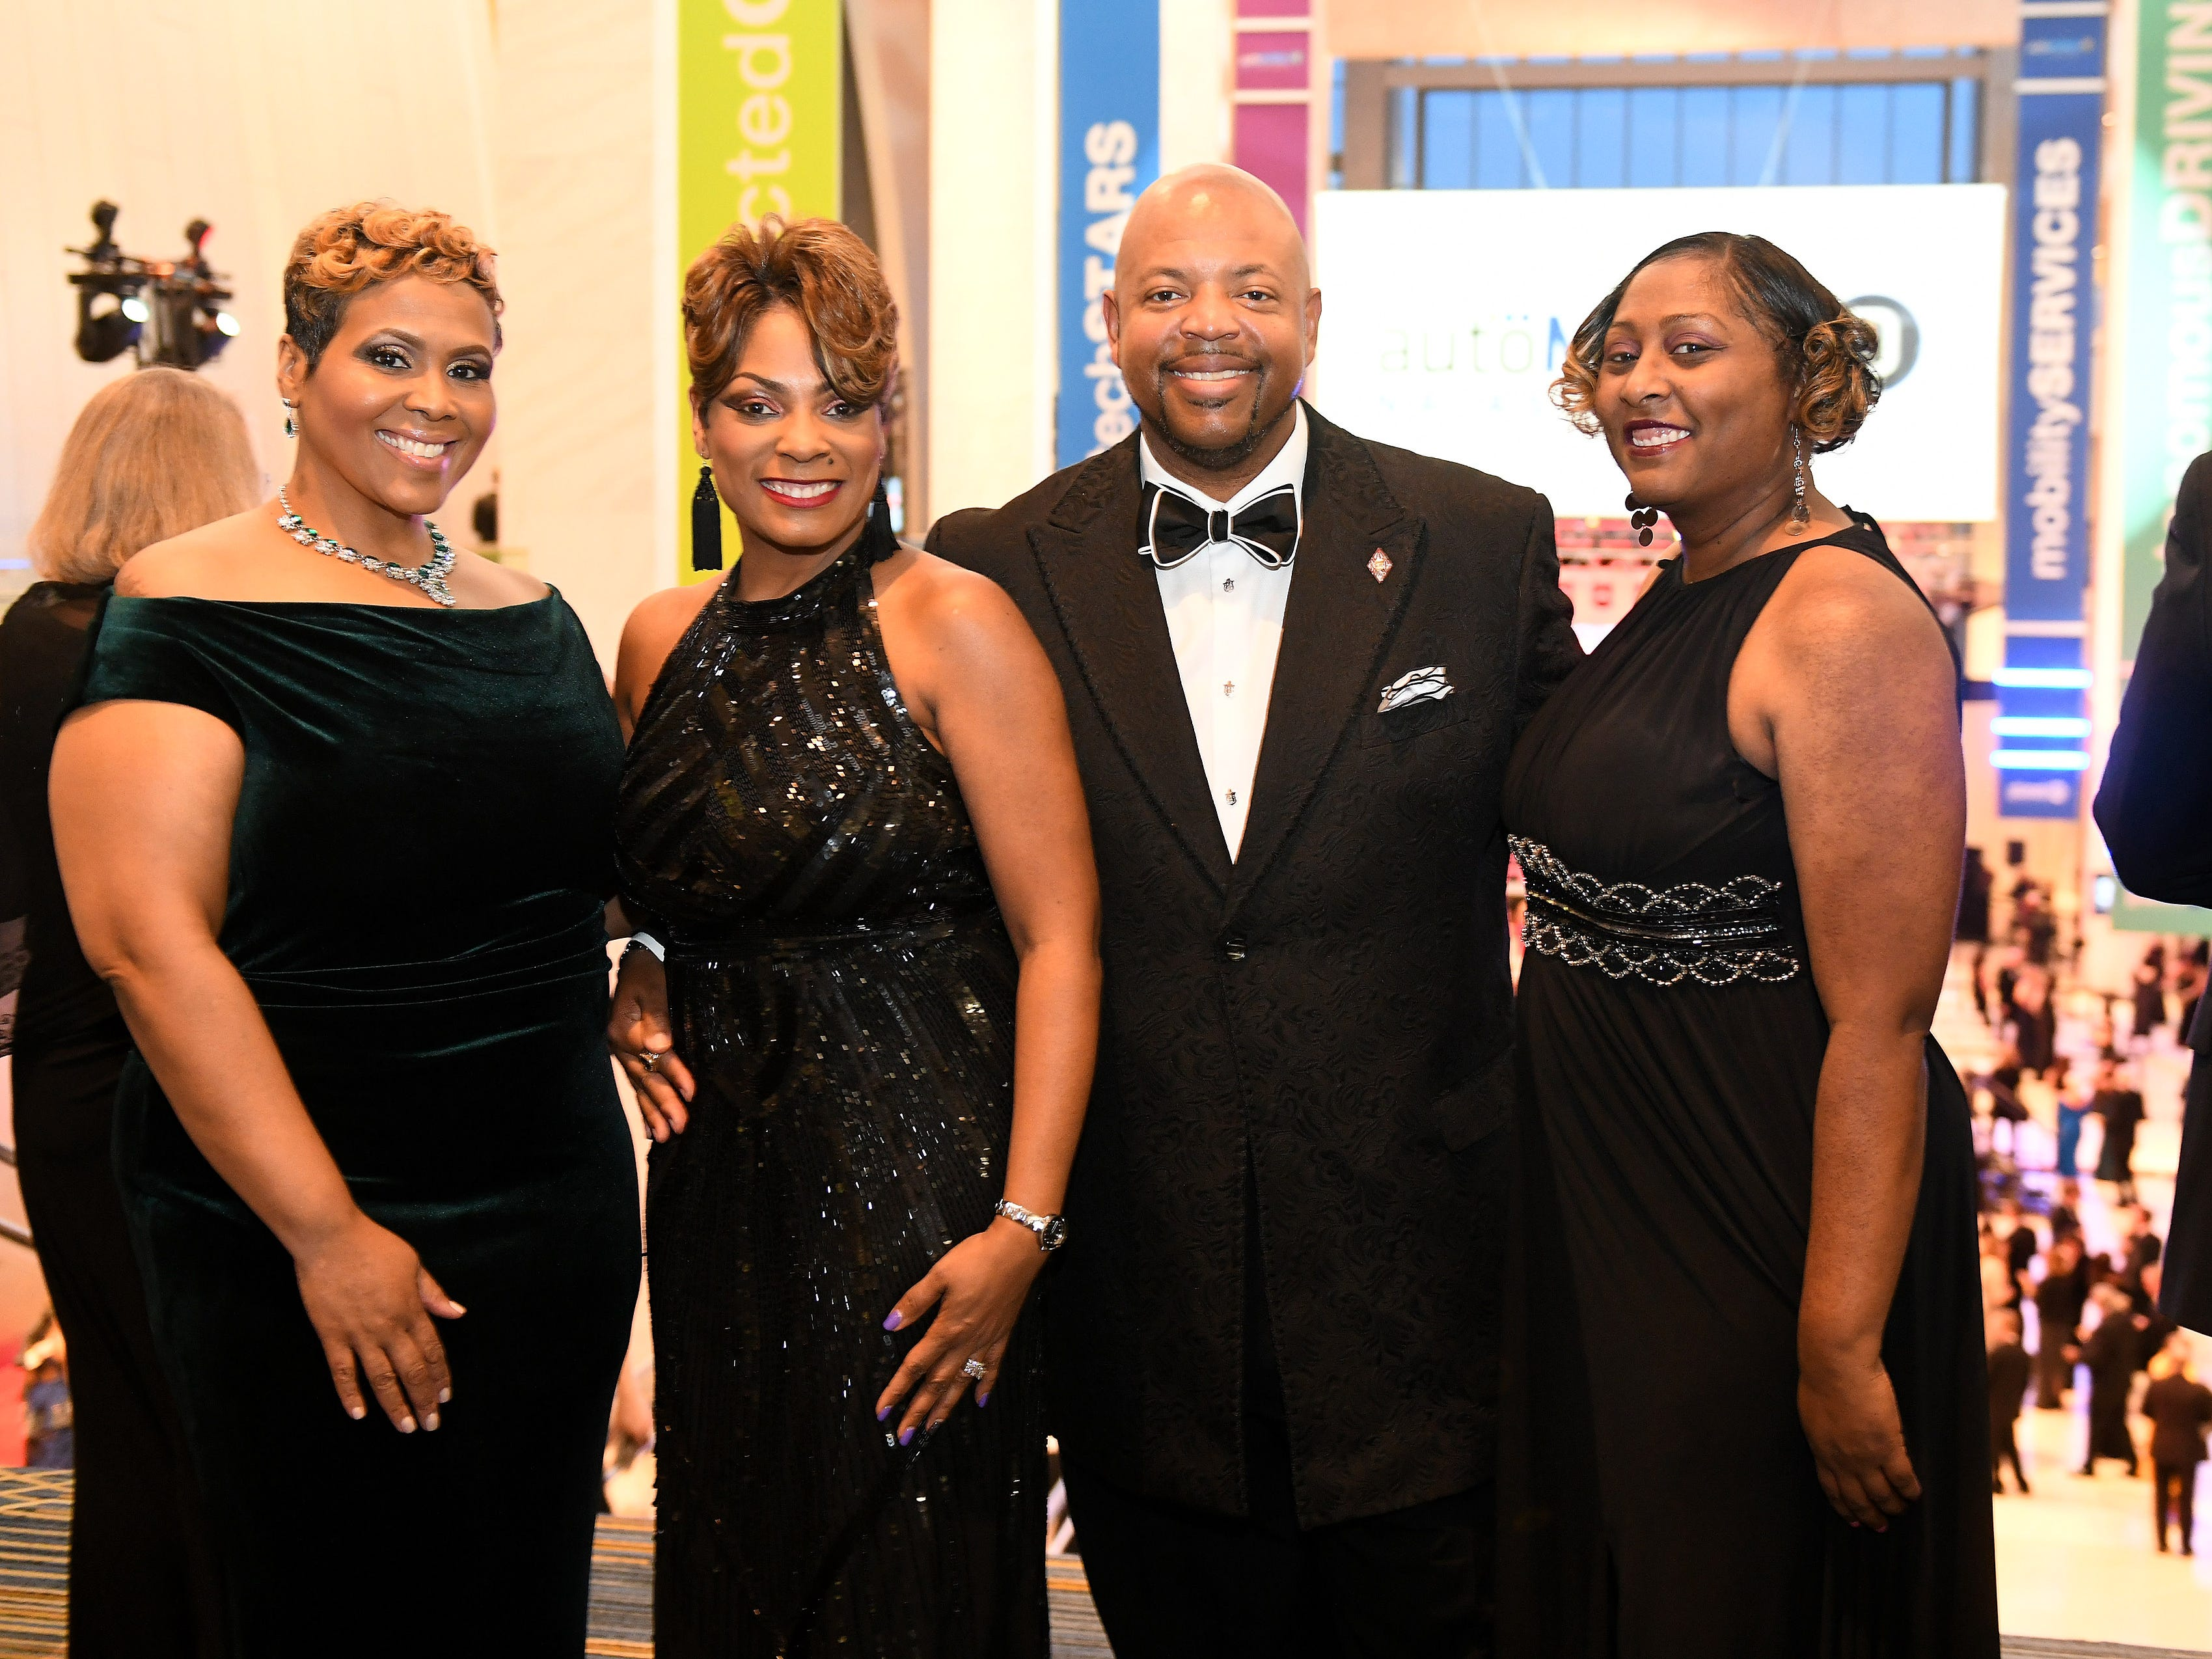 From left, Robyn Robinson of Bloomfield Hills, Samantha Hampton and Melvin Hampton of Westland and Monica Smith of Southfield, at the Charity Preview.